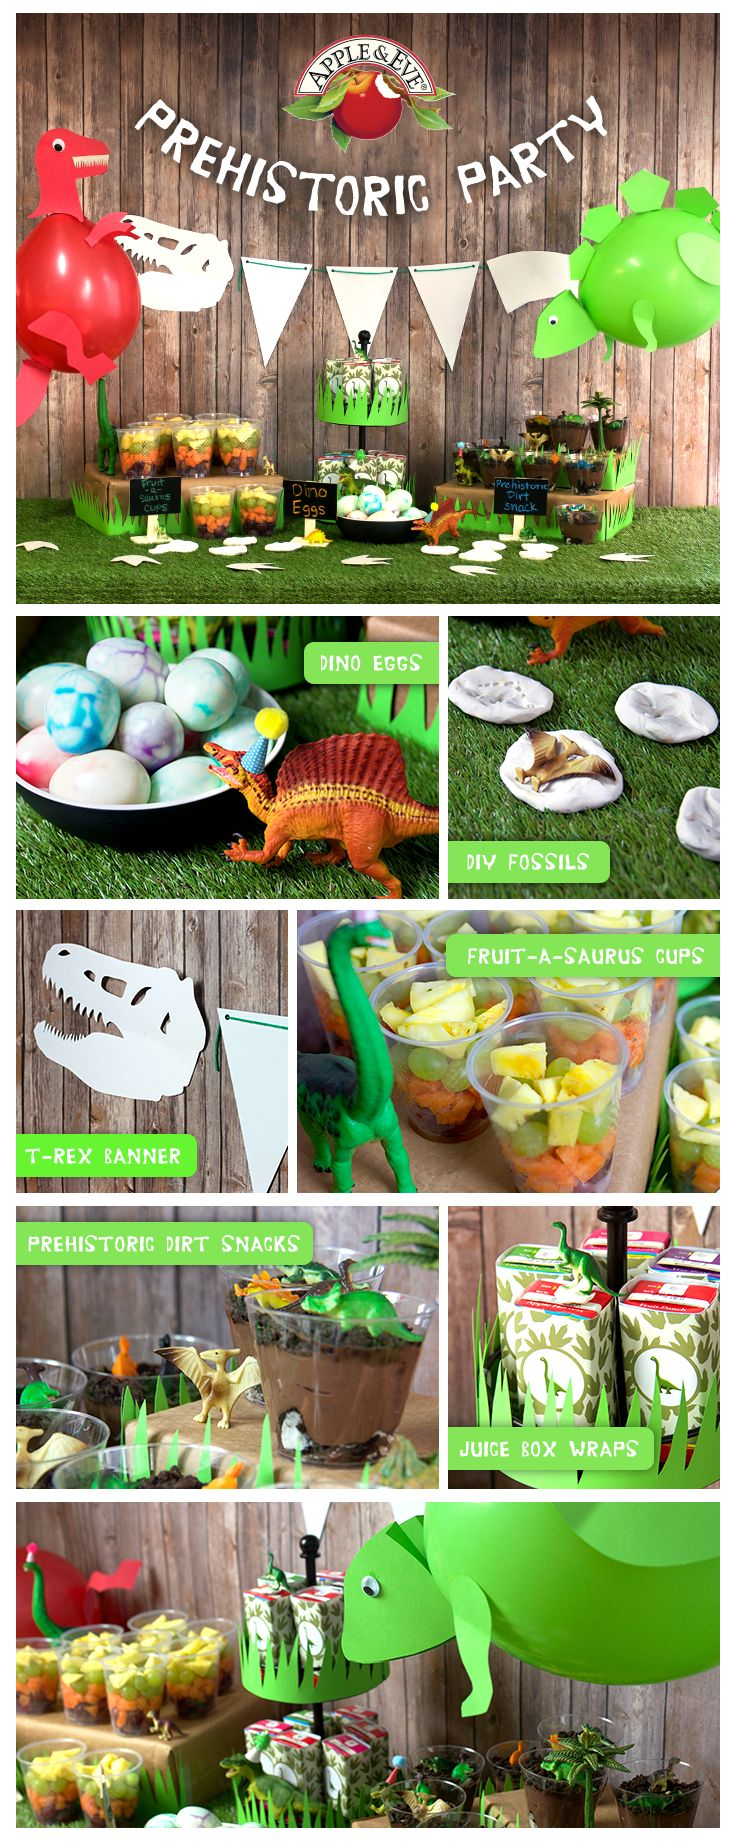 Throw a Prehistoric Dinosaur party for your kid's next bash. With dino egg snacks, T-rex decorations, and of course Apple & Eve juice, the event is sure to go down in history.